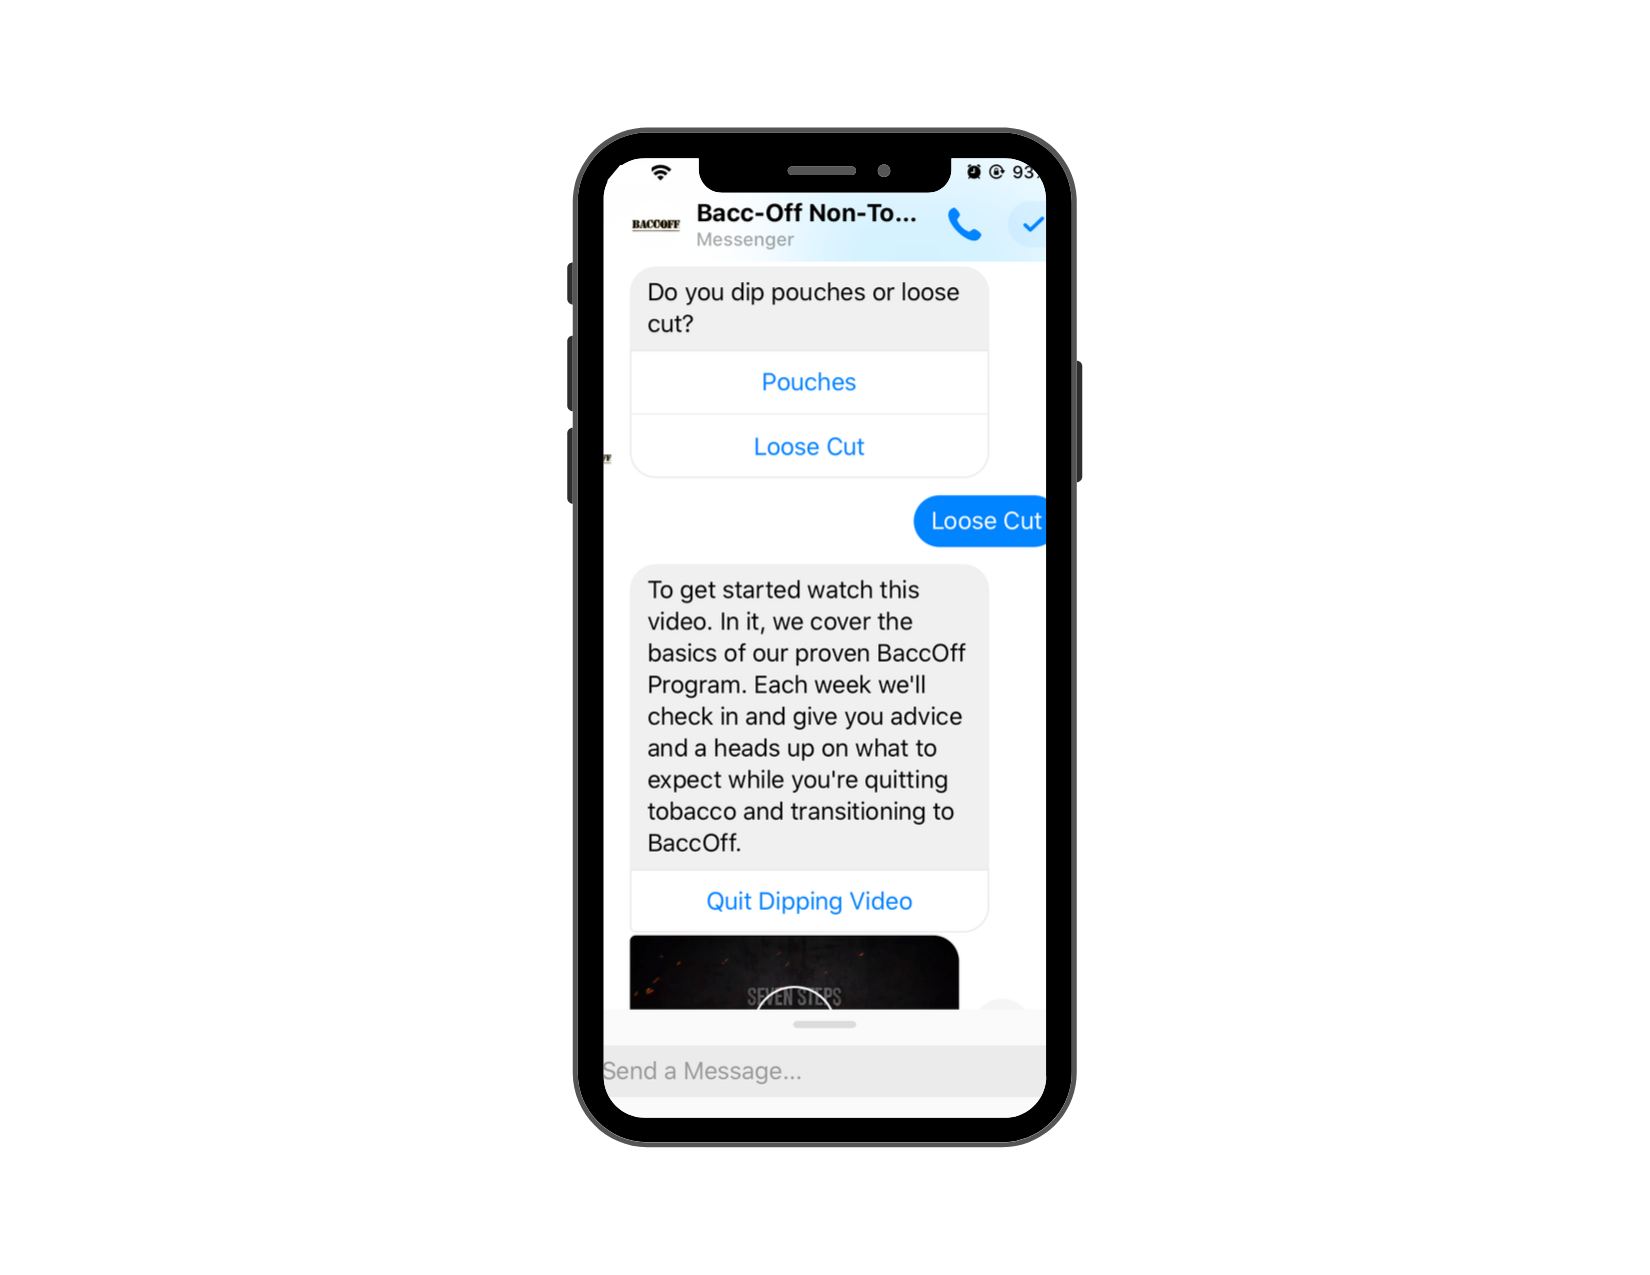 Ecommerce Trends 2020: BaccOff Chatbot Example